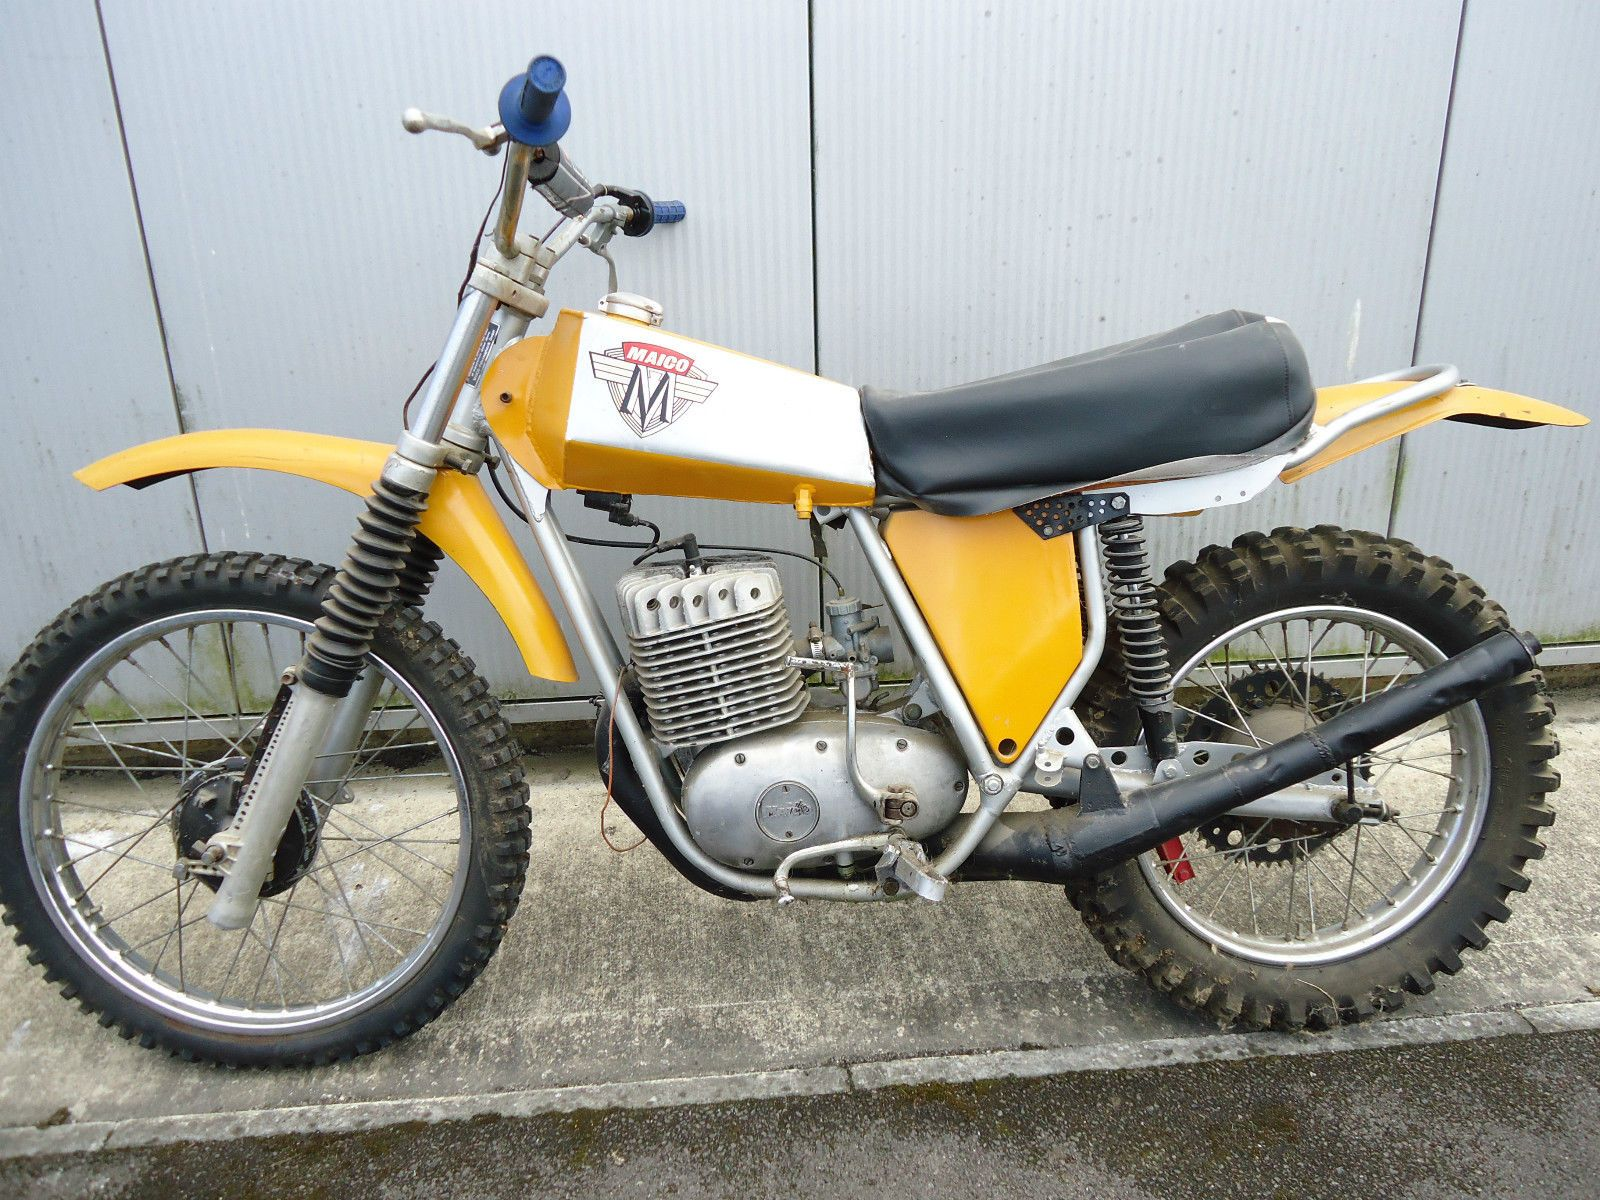 Mobile compatible blood wallpapers drew toepfer - 1969 Maico Mc 250 Unregistered Us Import Classic Restoration Project